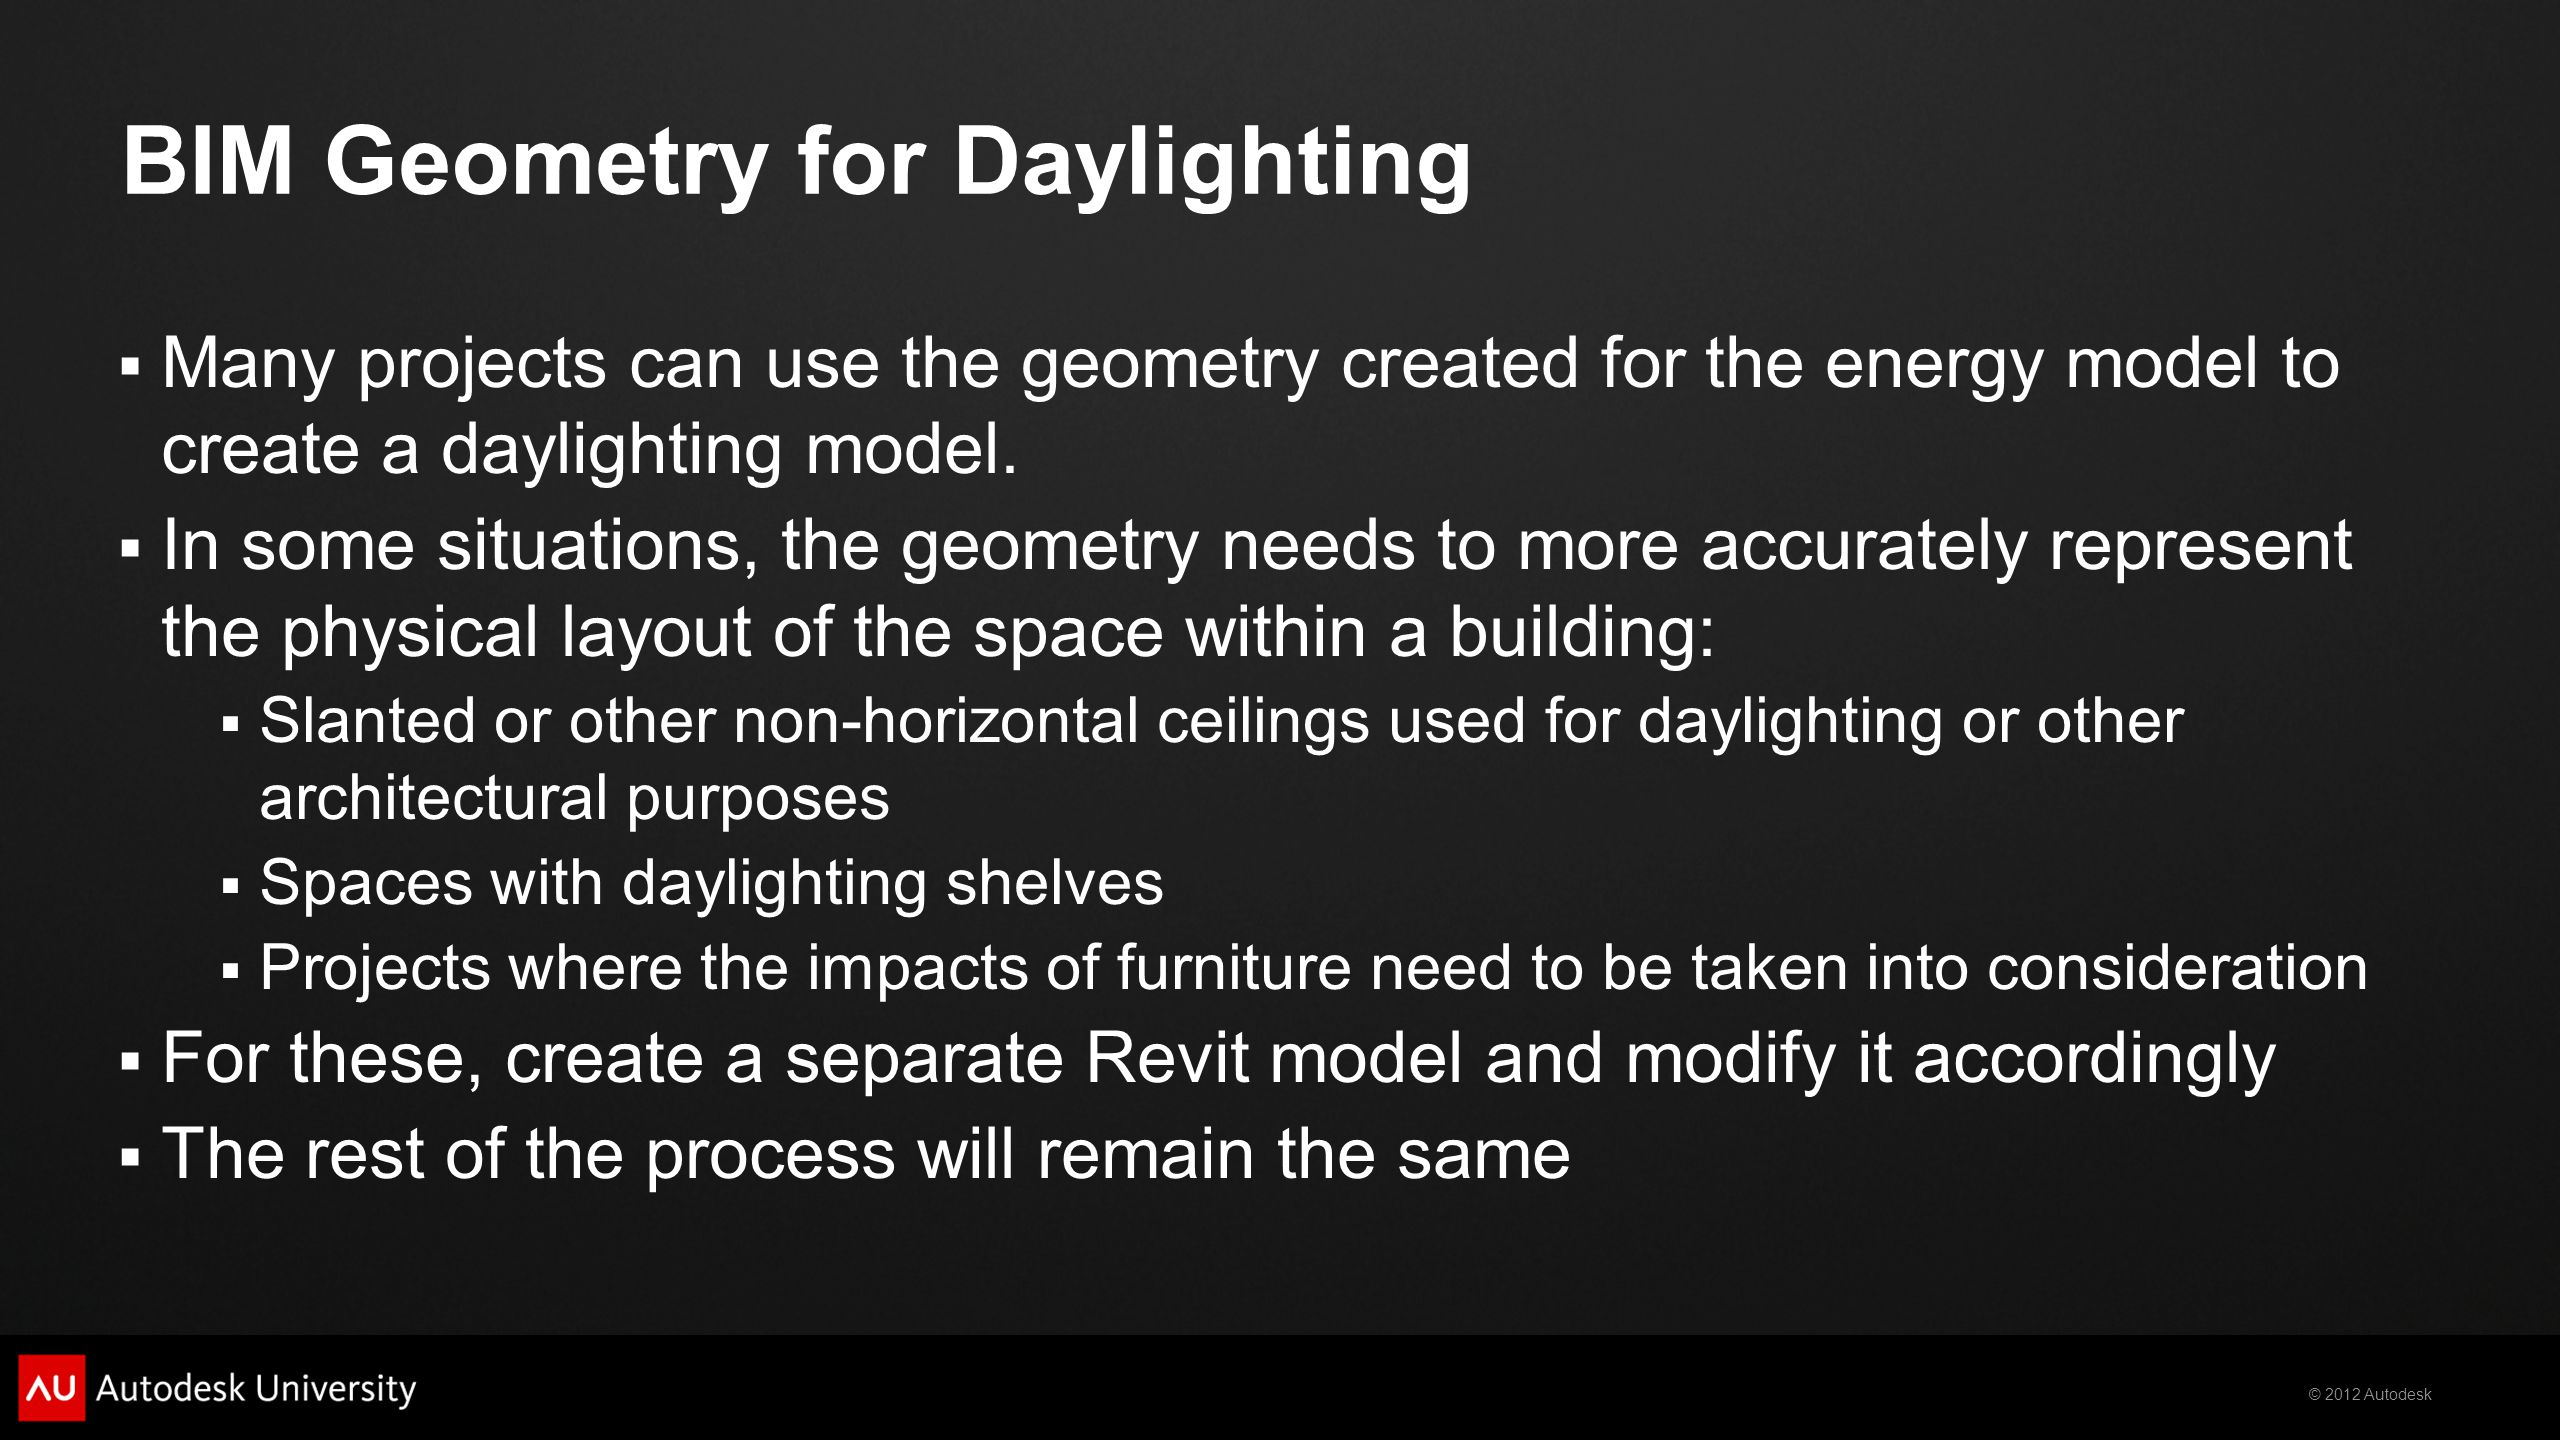 BIM Geometry for Daylighting